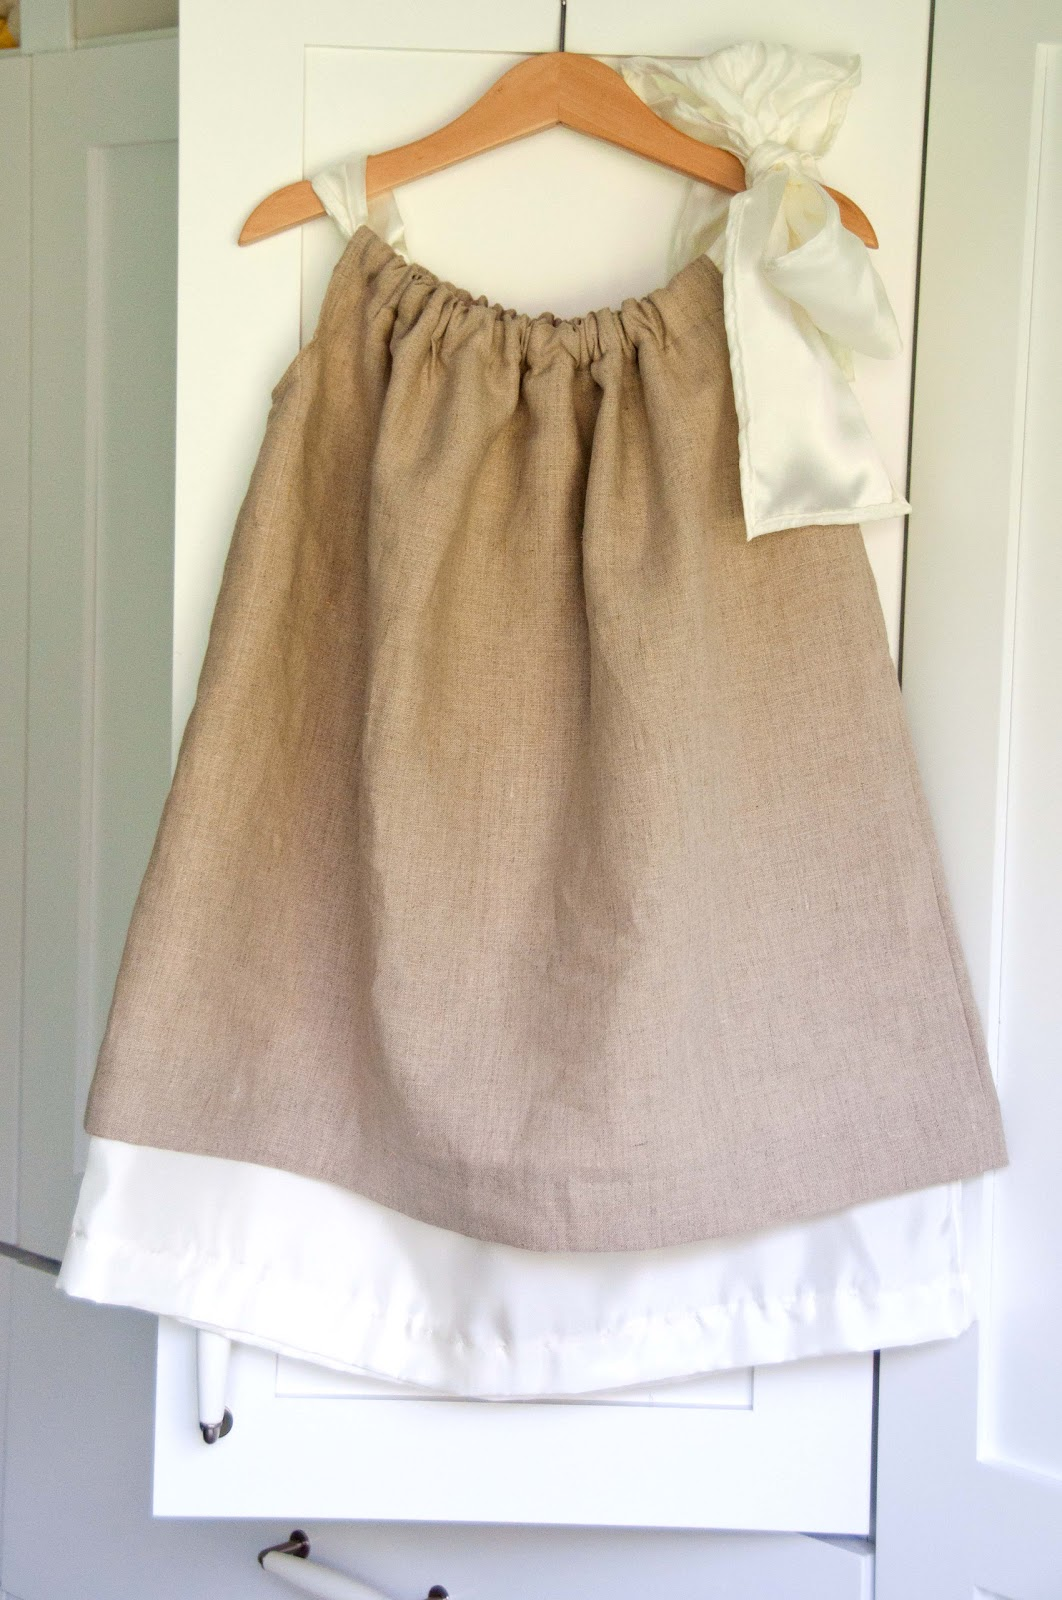 sewing kids darling pillowcase dress